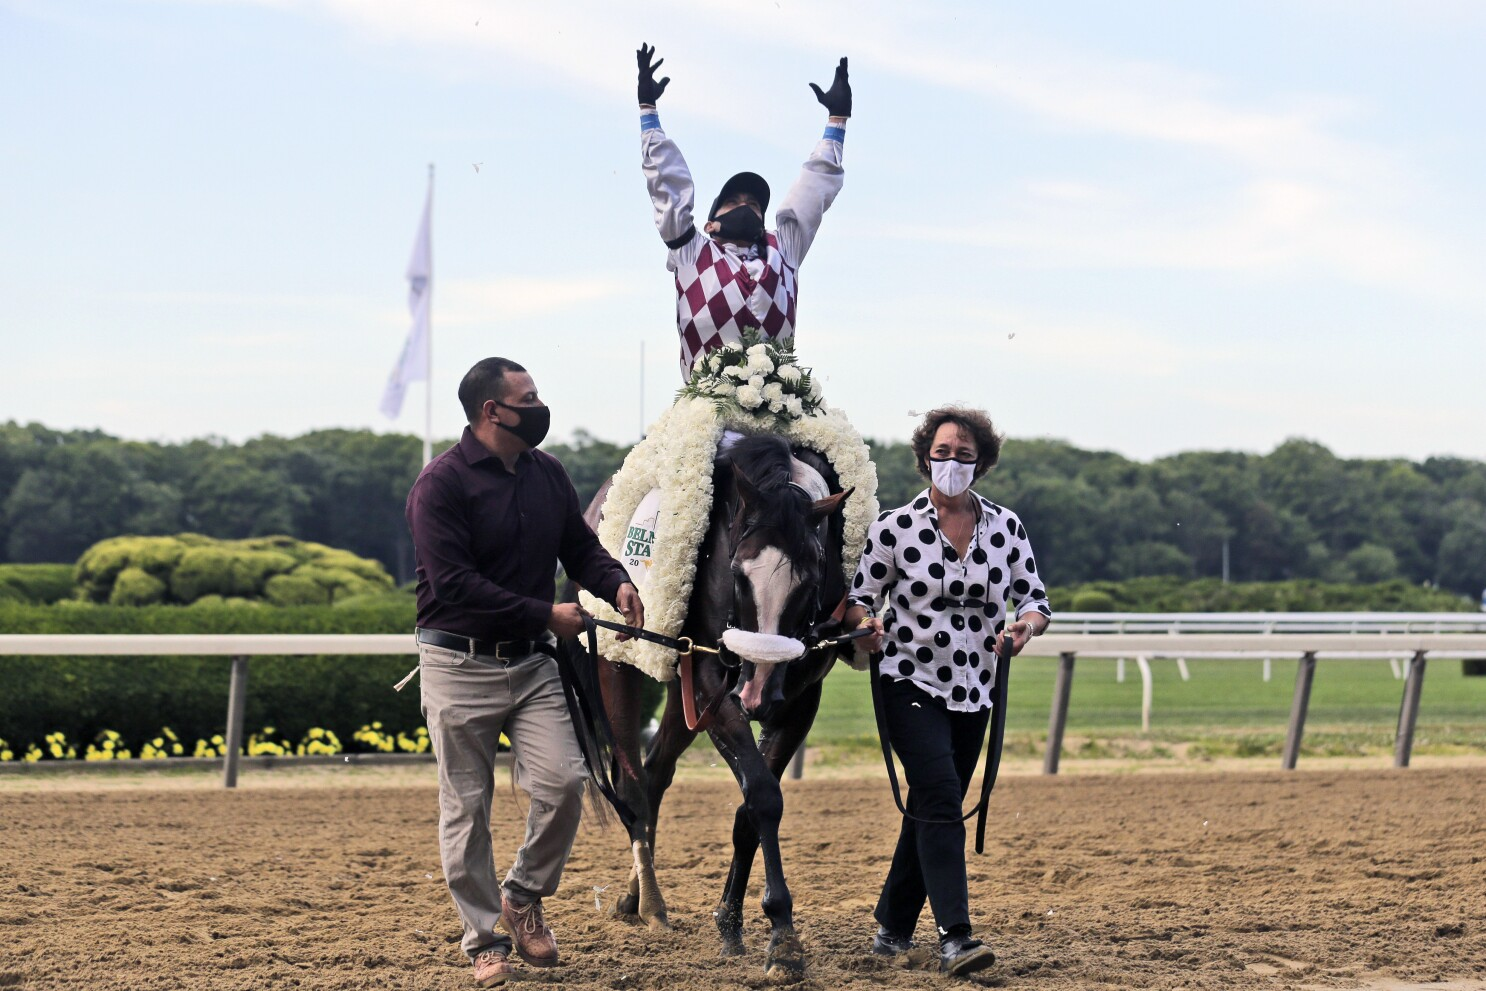 Tiz The Law cruises to victory in Belmont Stakes - Los Angeles Times